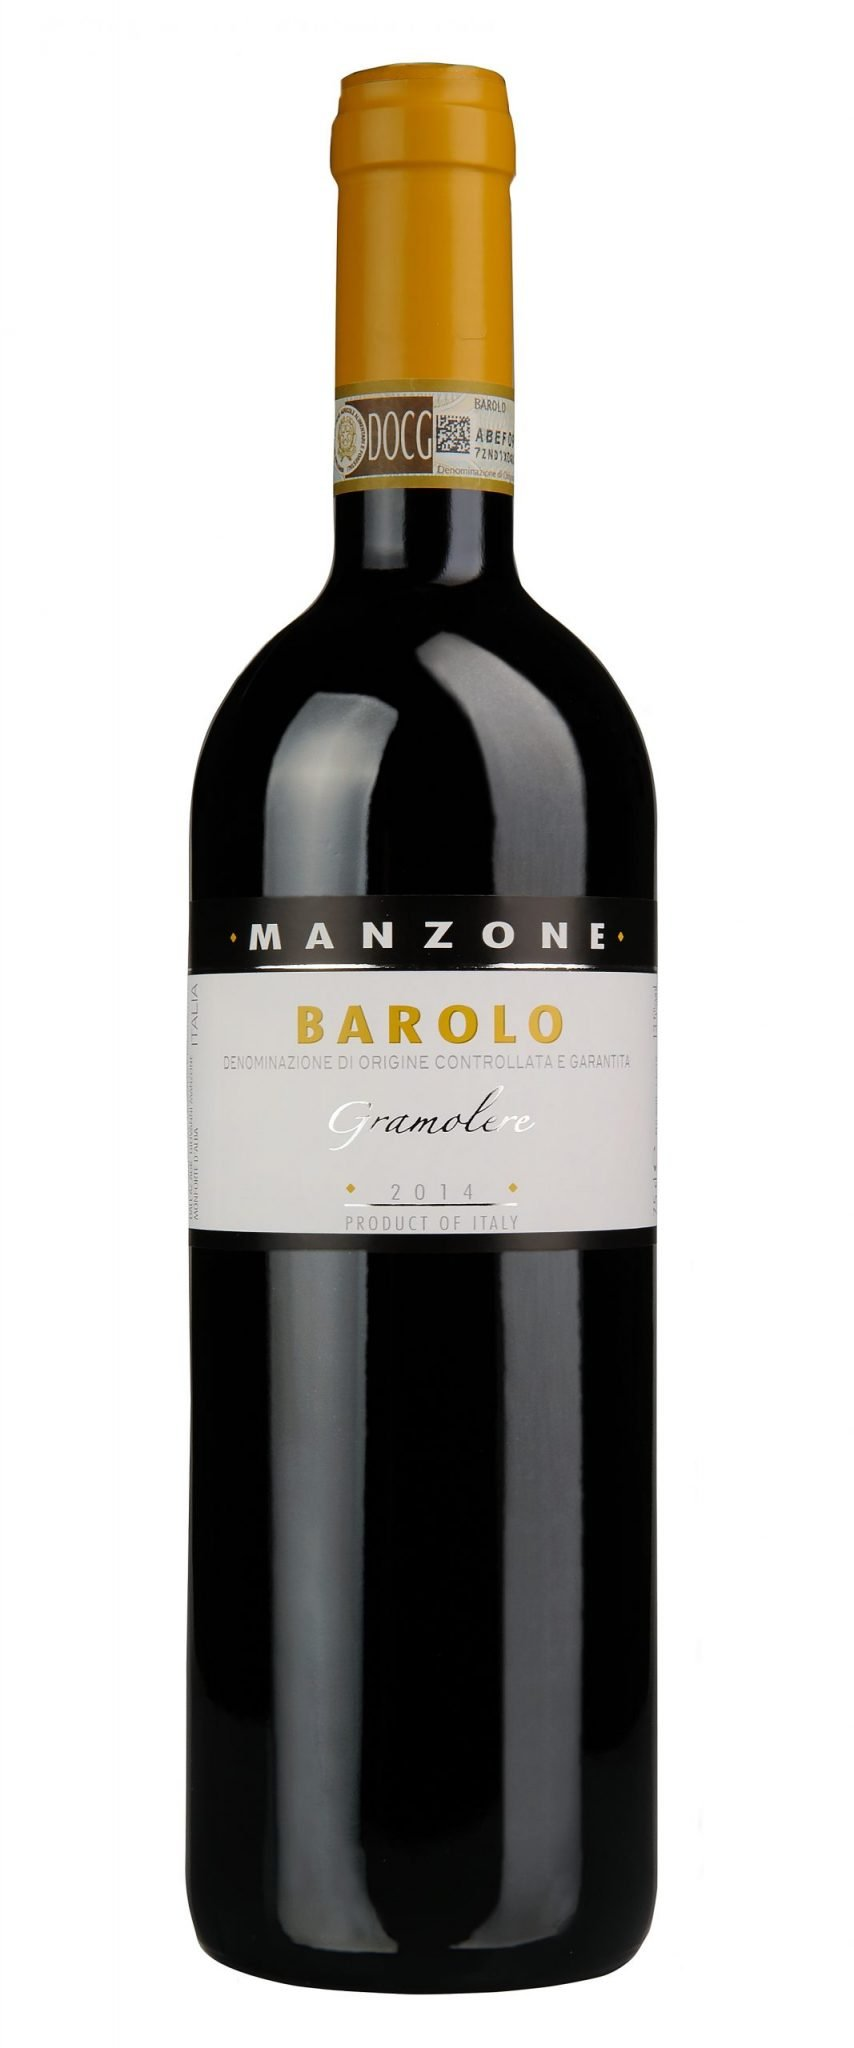 Manzone Barolo Le Gramolere 2014 from Barolo, Piedmont, Italy - Lively ruby ... of producers farm here, with the largest parcels belonging to Giovanni Manzone. ... Barolo DOCG, which are situated in the best part of the famed Meriame area).